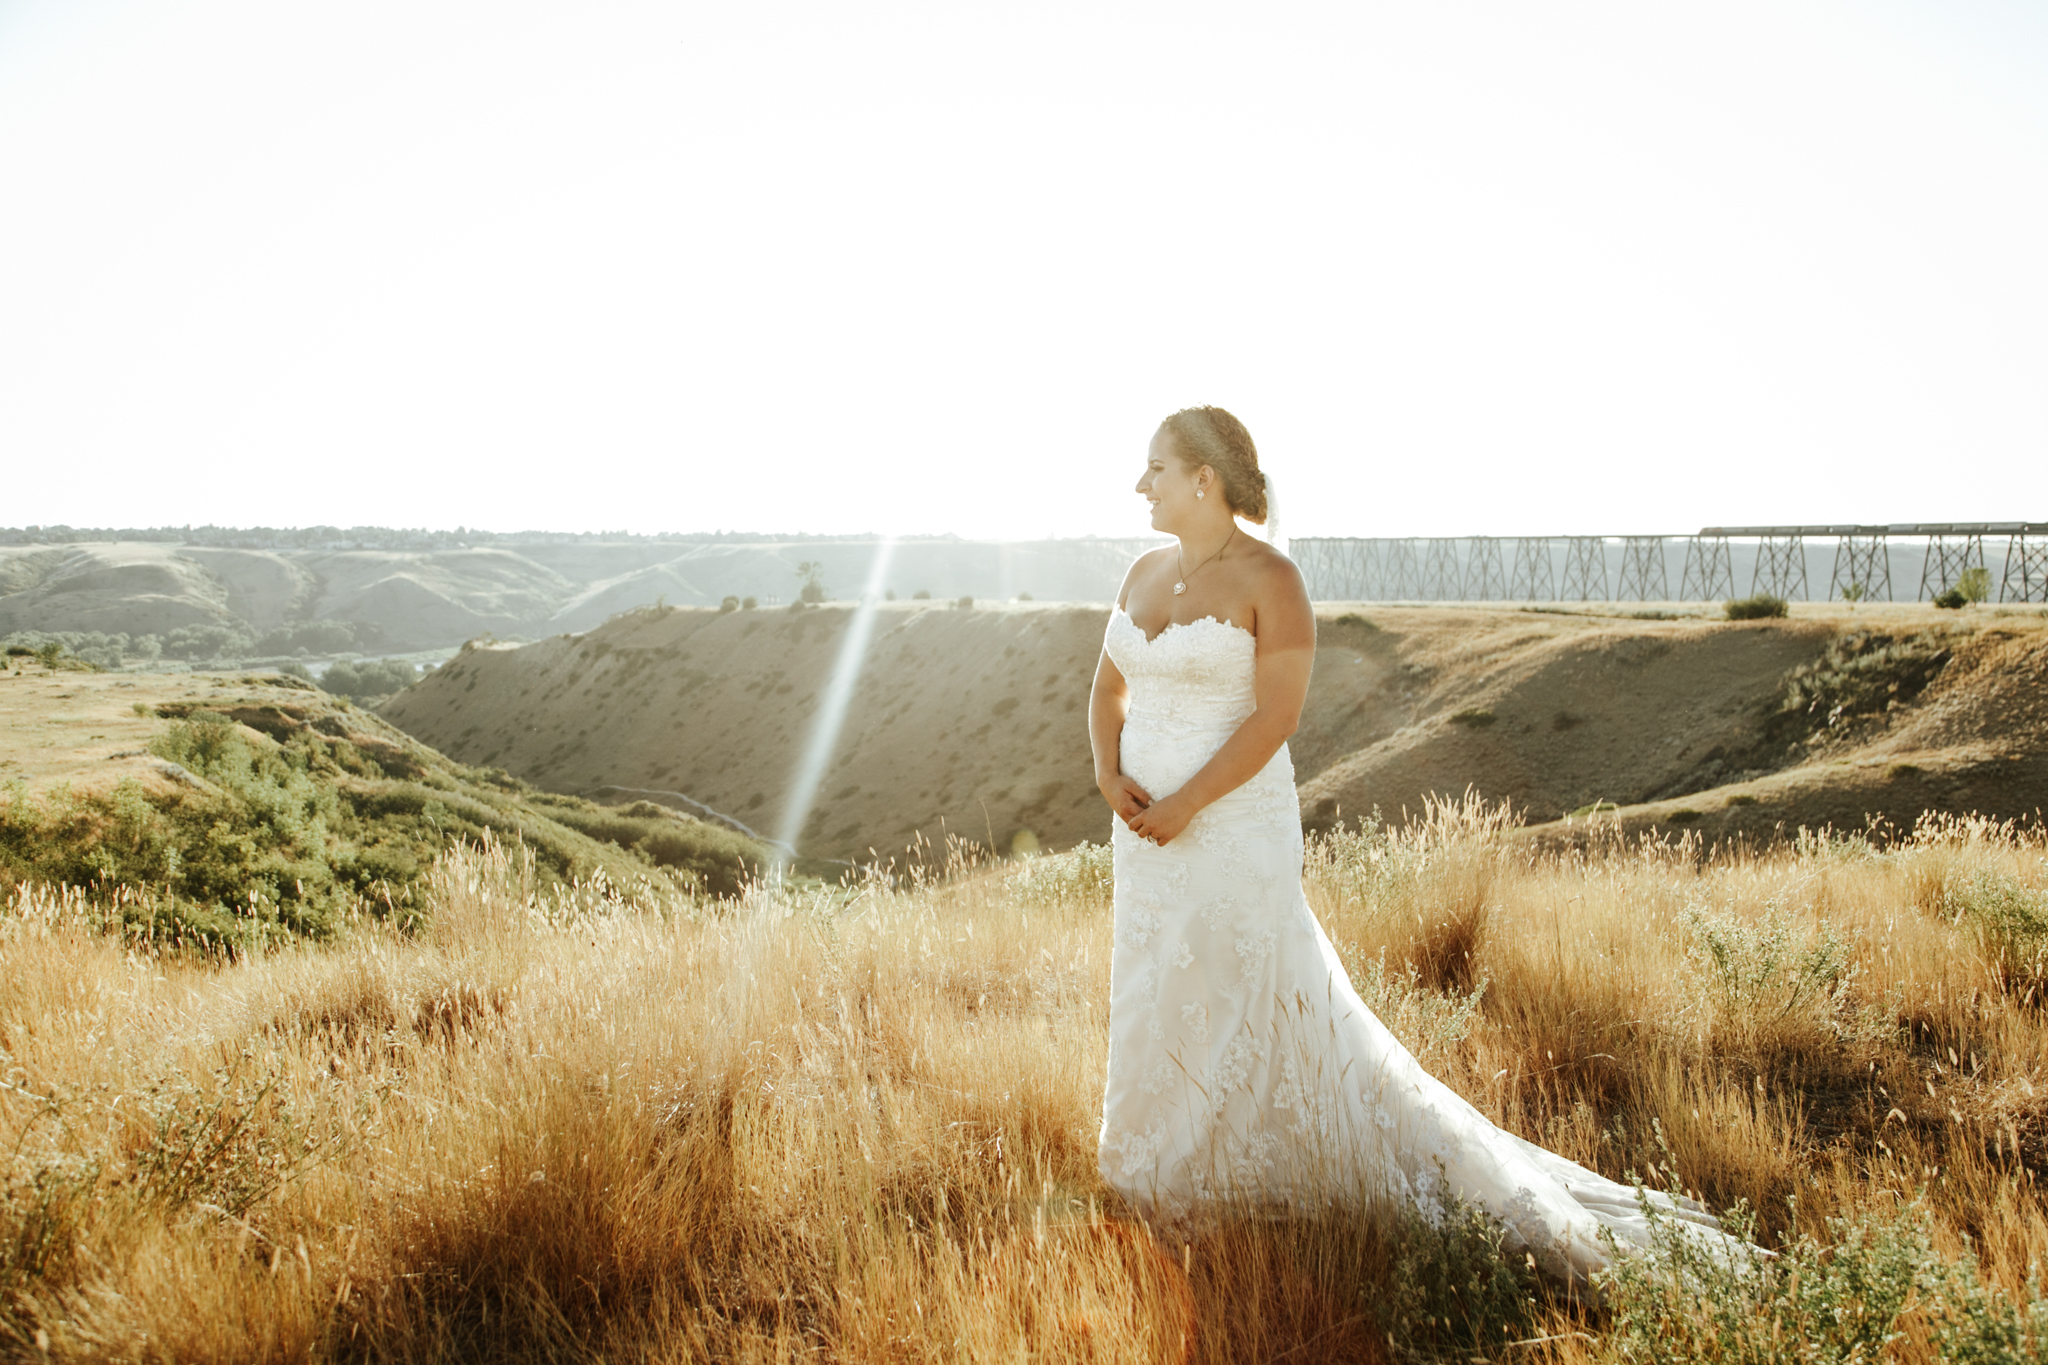 lethbridge-wedding-photographer-love-and-be-loved-photography-trent-danielle-galt-reception-picture-image-photo-197.jpg